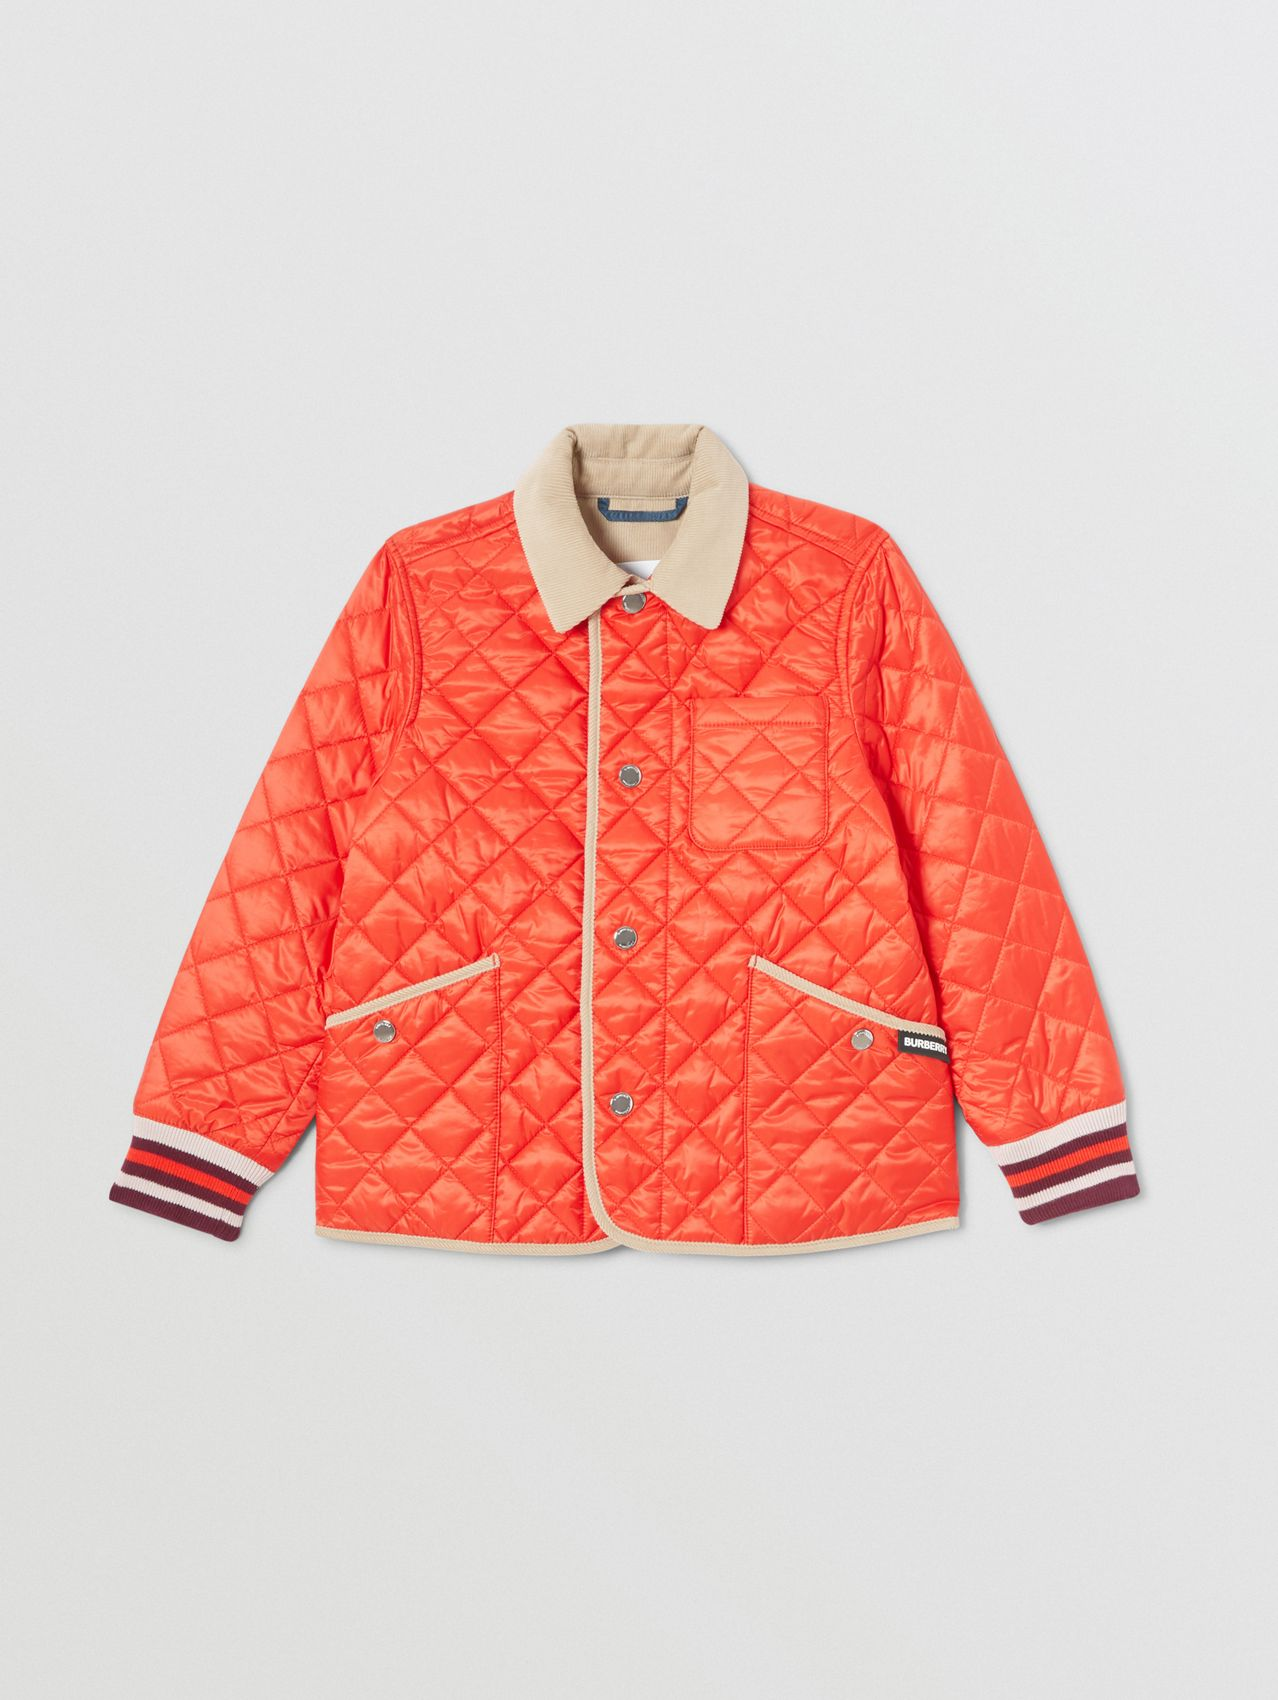 Corduroy Trim Lightweight Diamond Quilted Jacket in Bright Coral Orange